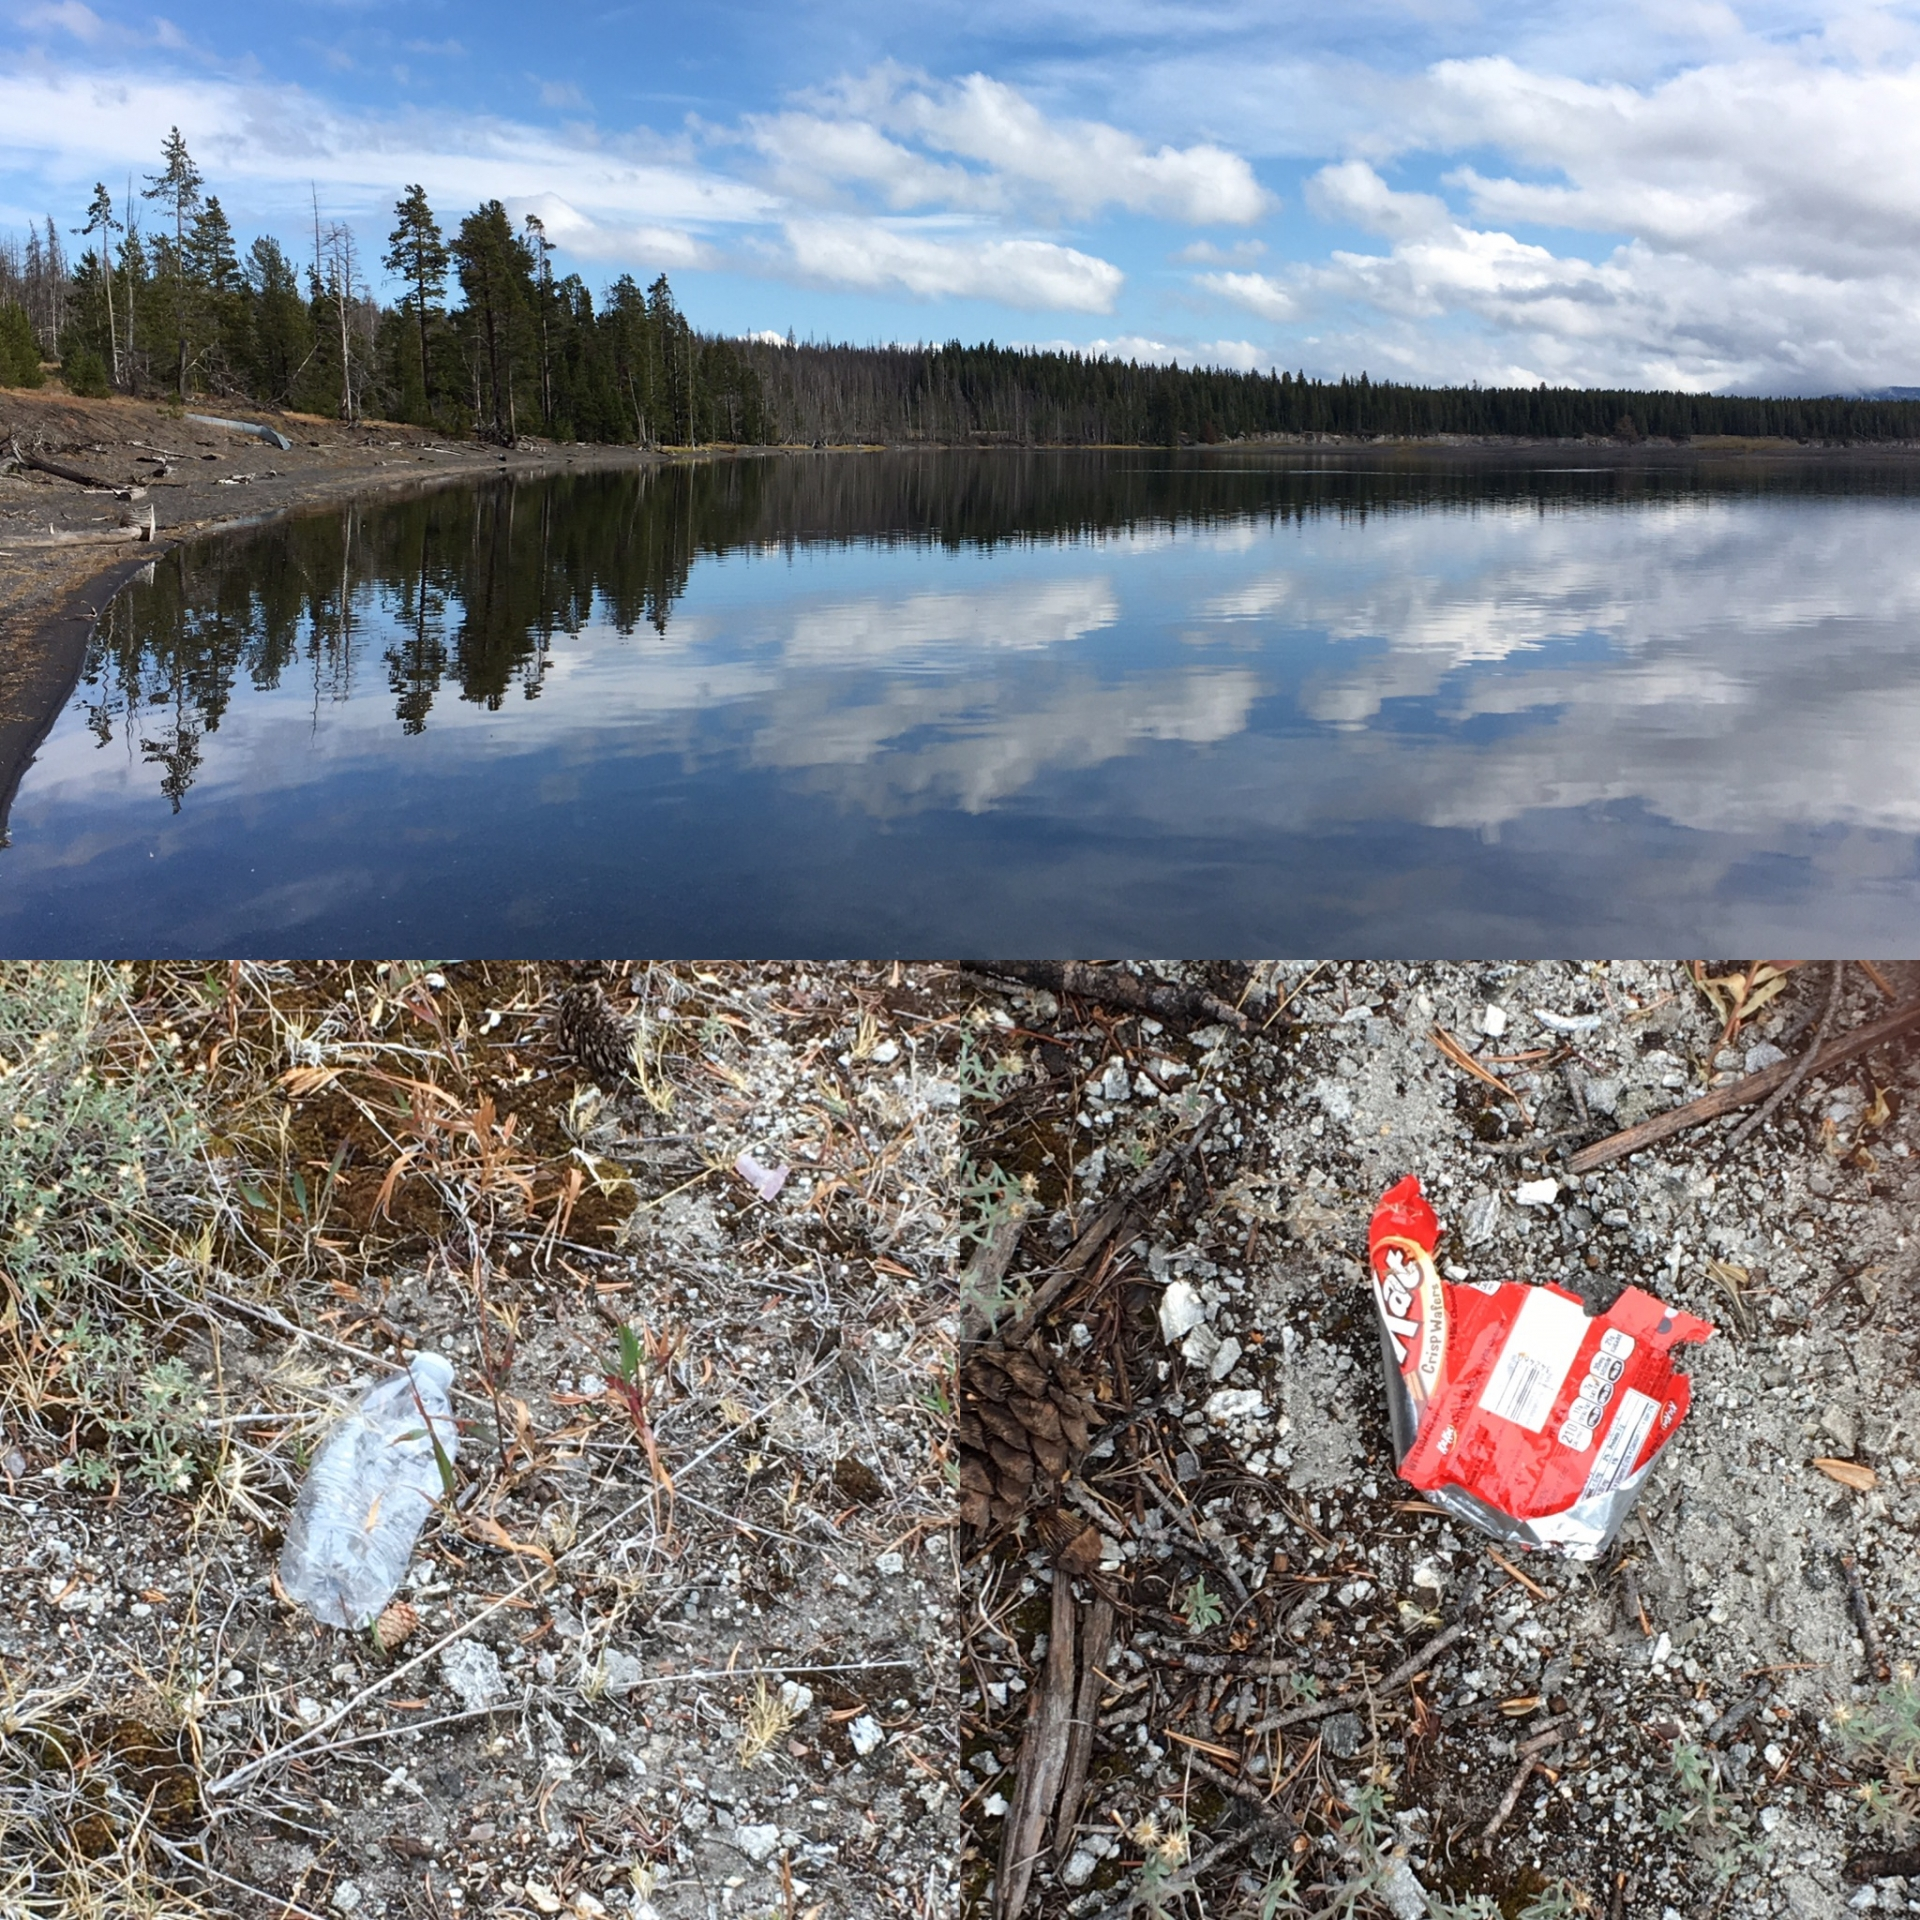 Visit national parks responsibily and make a pact to pack it out (don't leave litter behind)